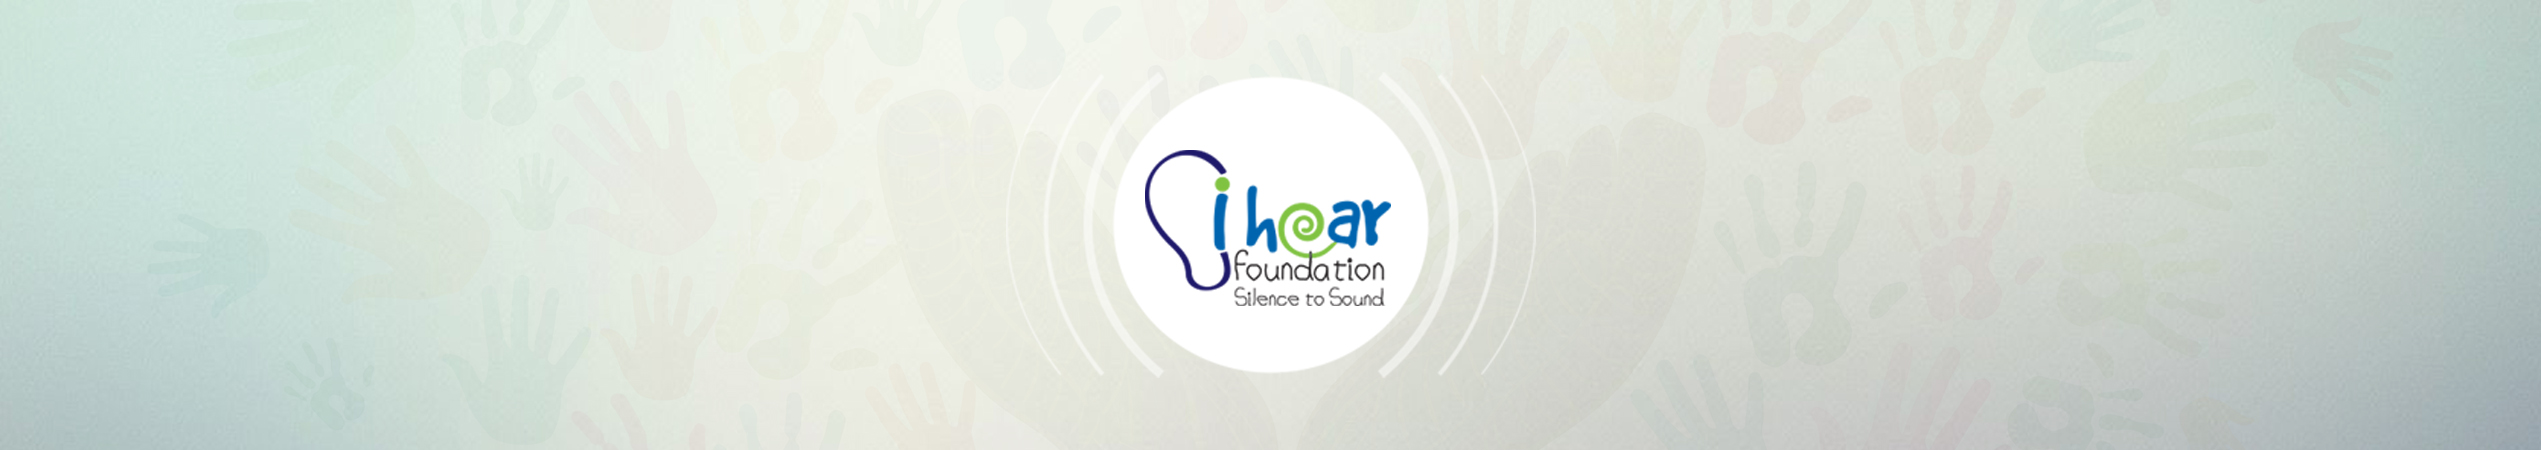 iHear Foundation - From Silence to Sound